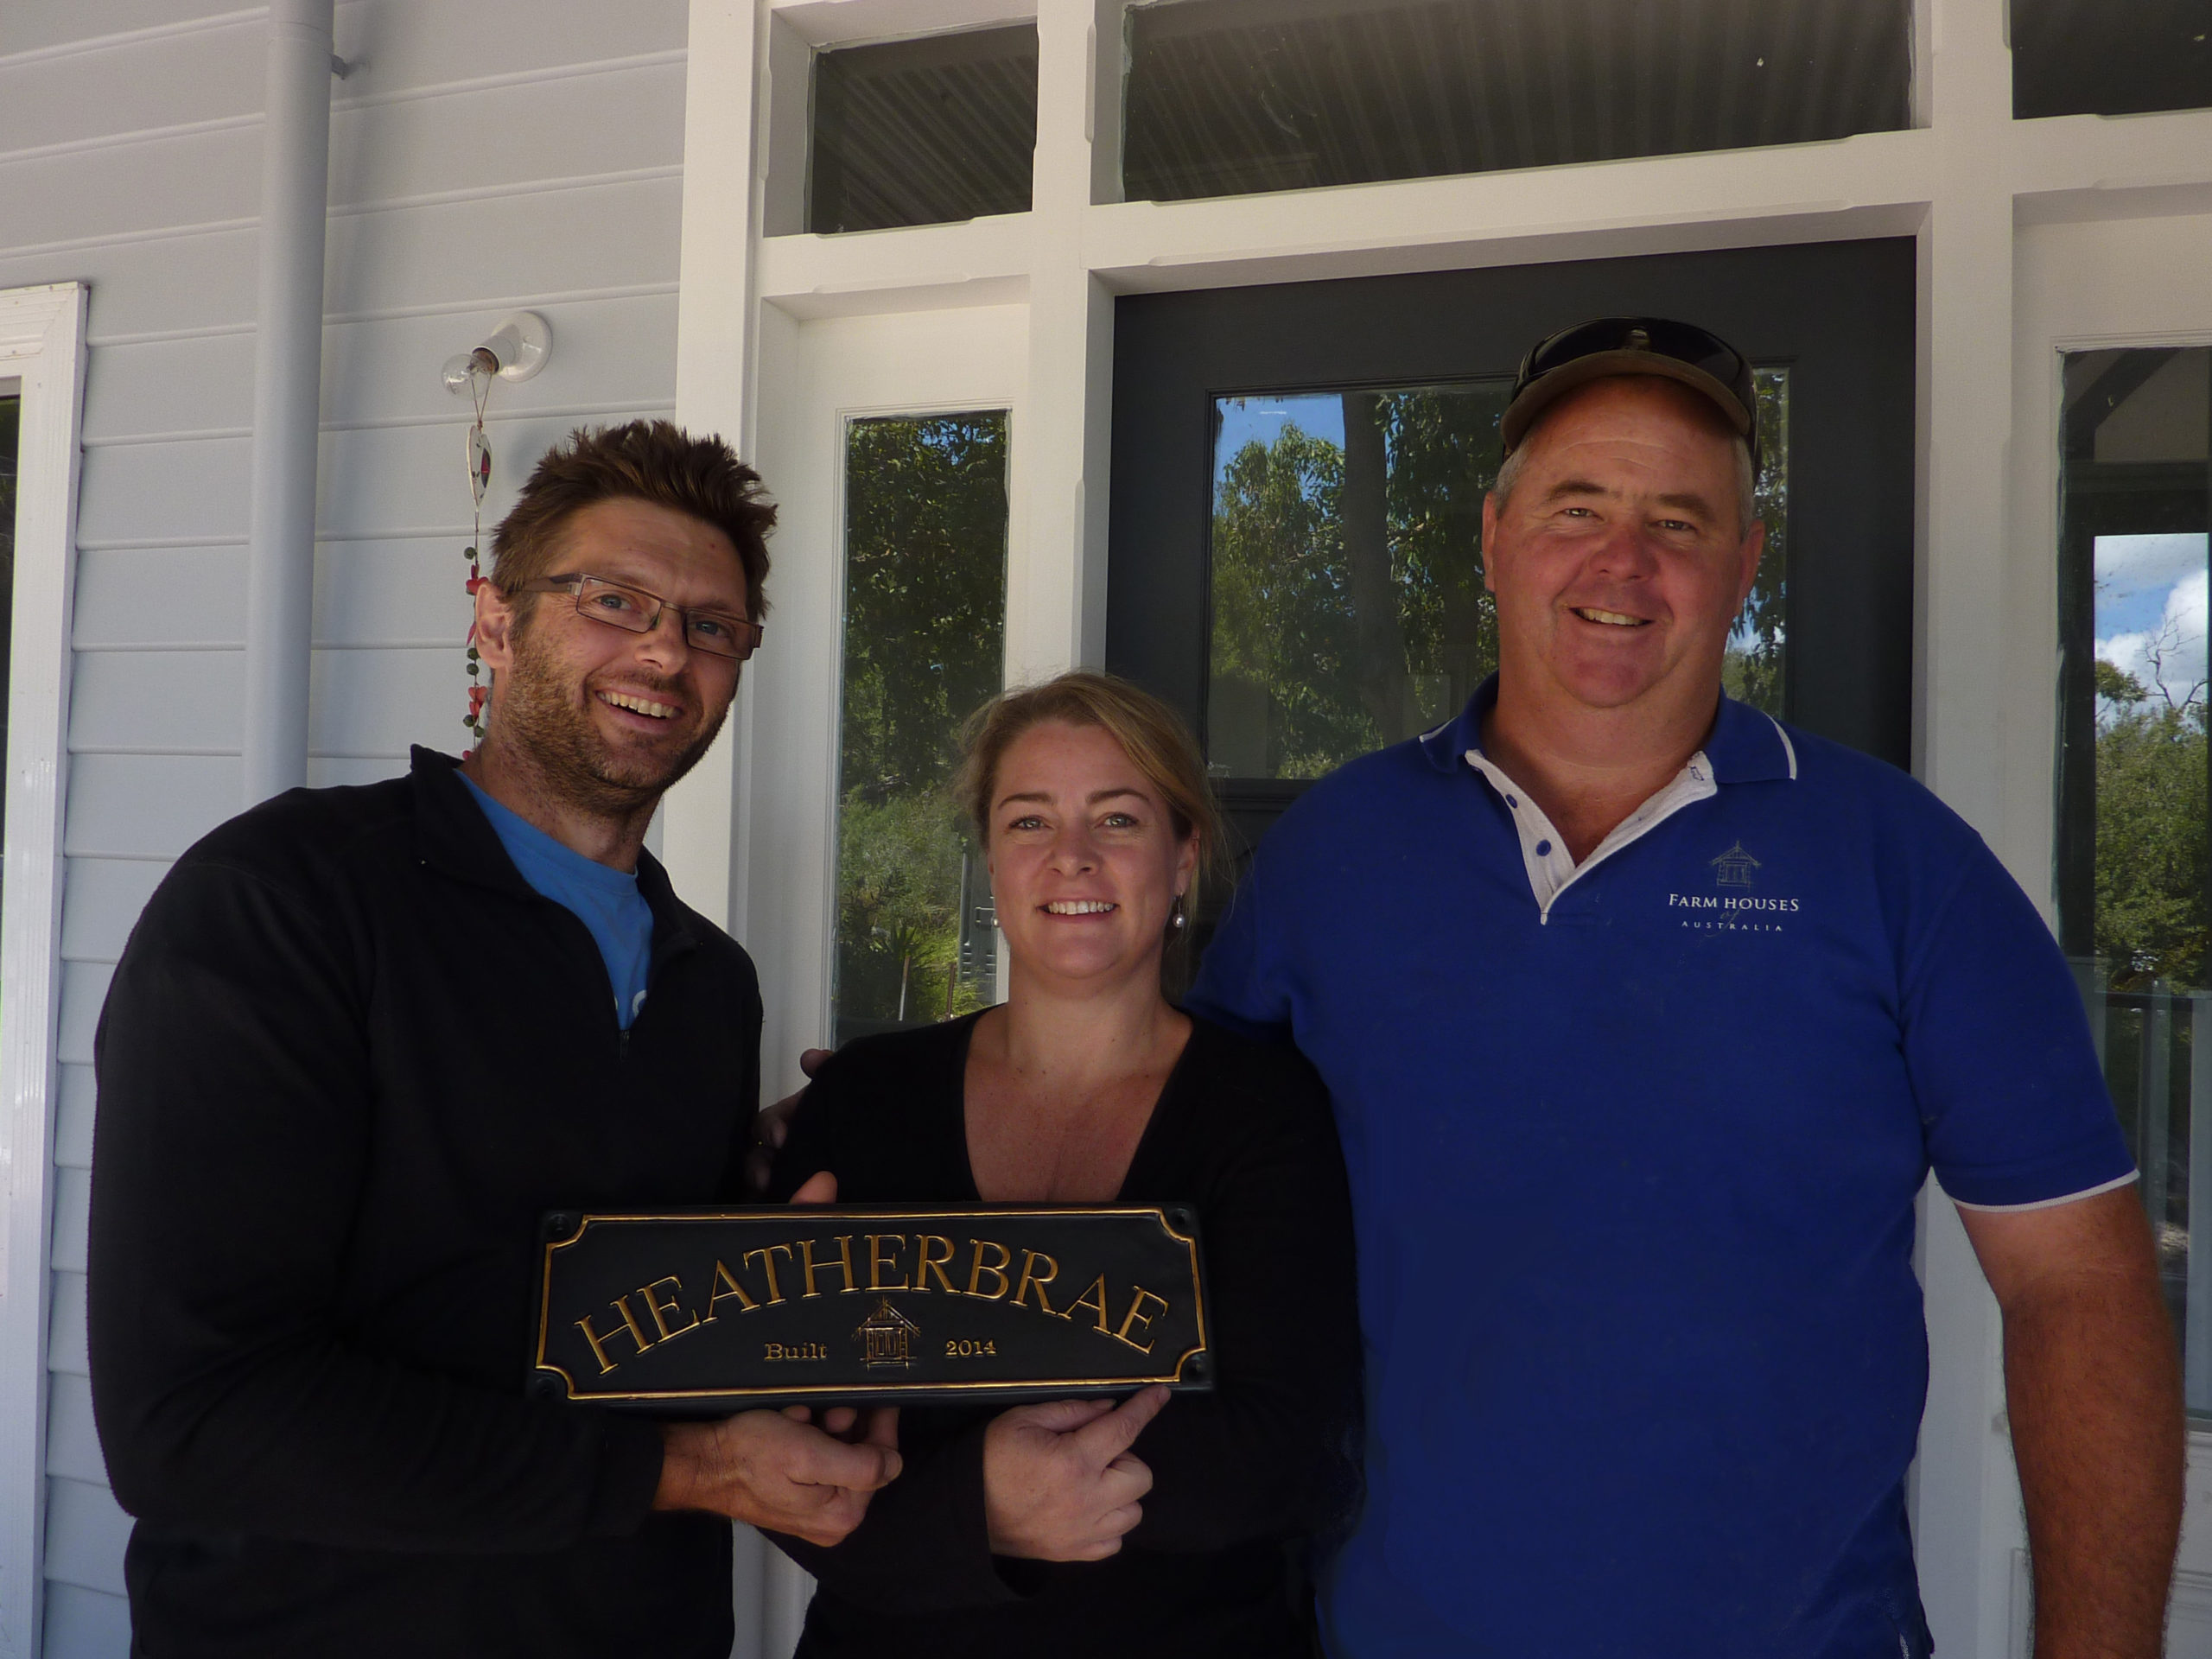 Heatherbrae Christian and Claire - with Doug the builder built by Farm Houses of Australia